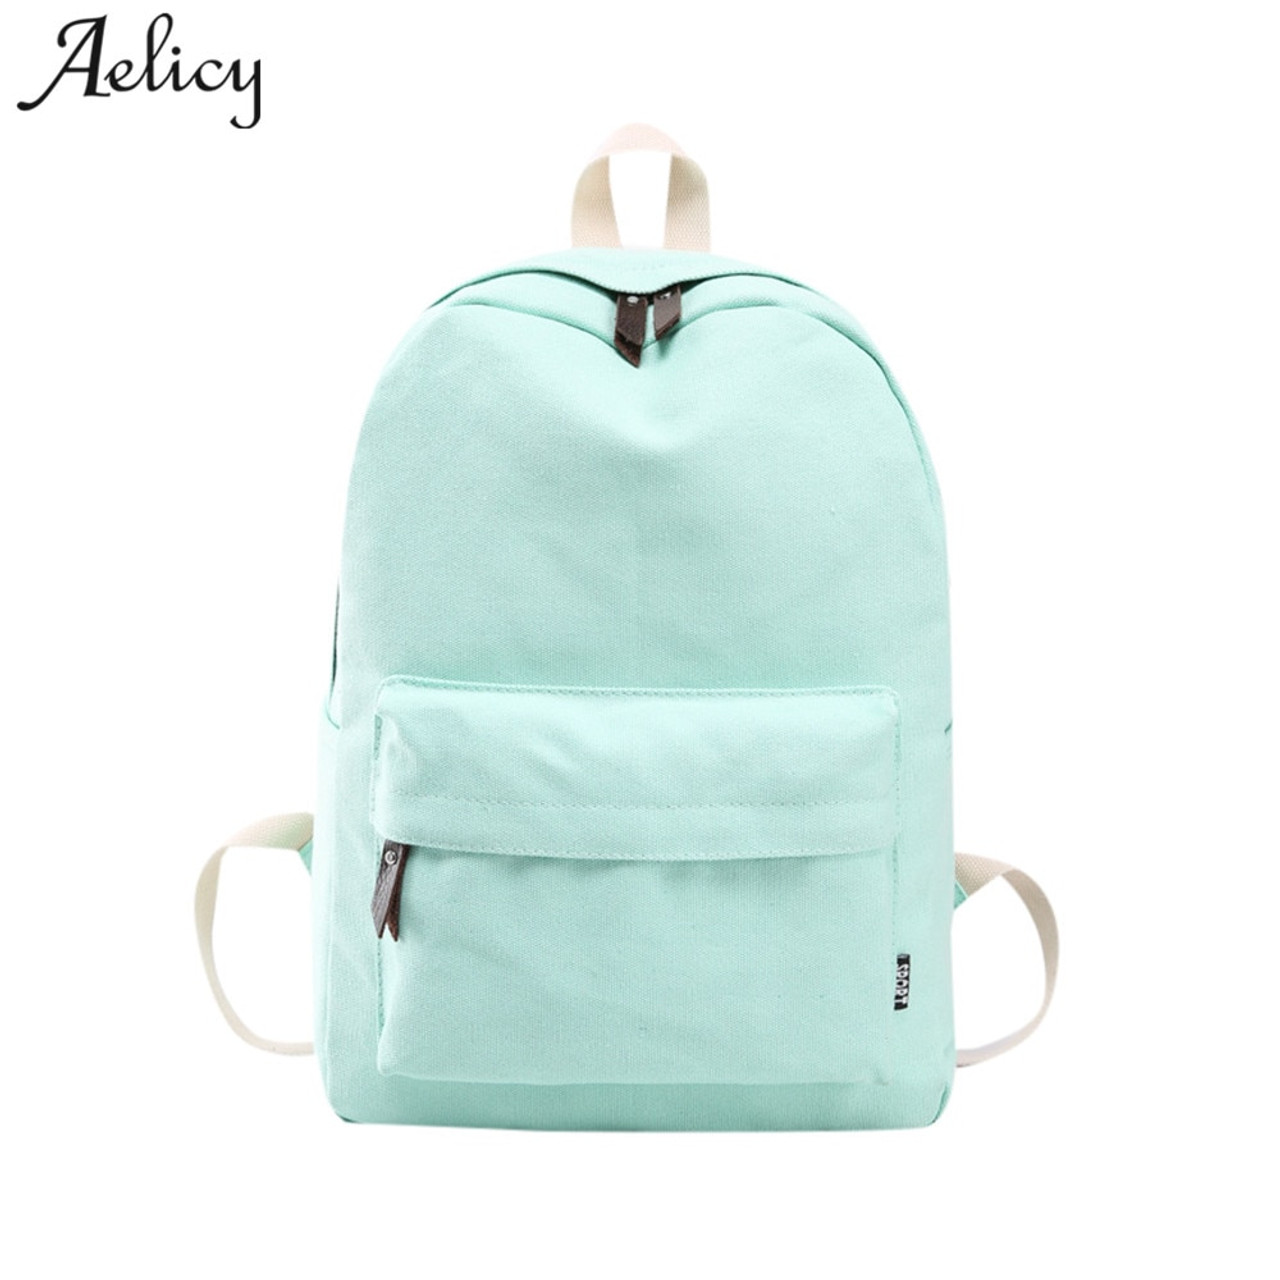 Luggage & Bags Cute New Tide Children Mikey Schoolbag Preppy Style Teenage Girls Personality Bow Backpack Femme Multi-function Travel Bags D146 The Latest Fashion Women's Bags